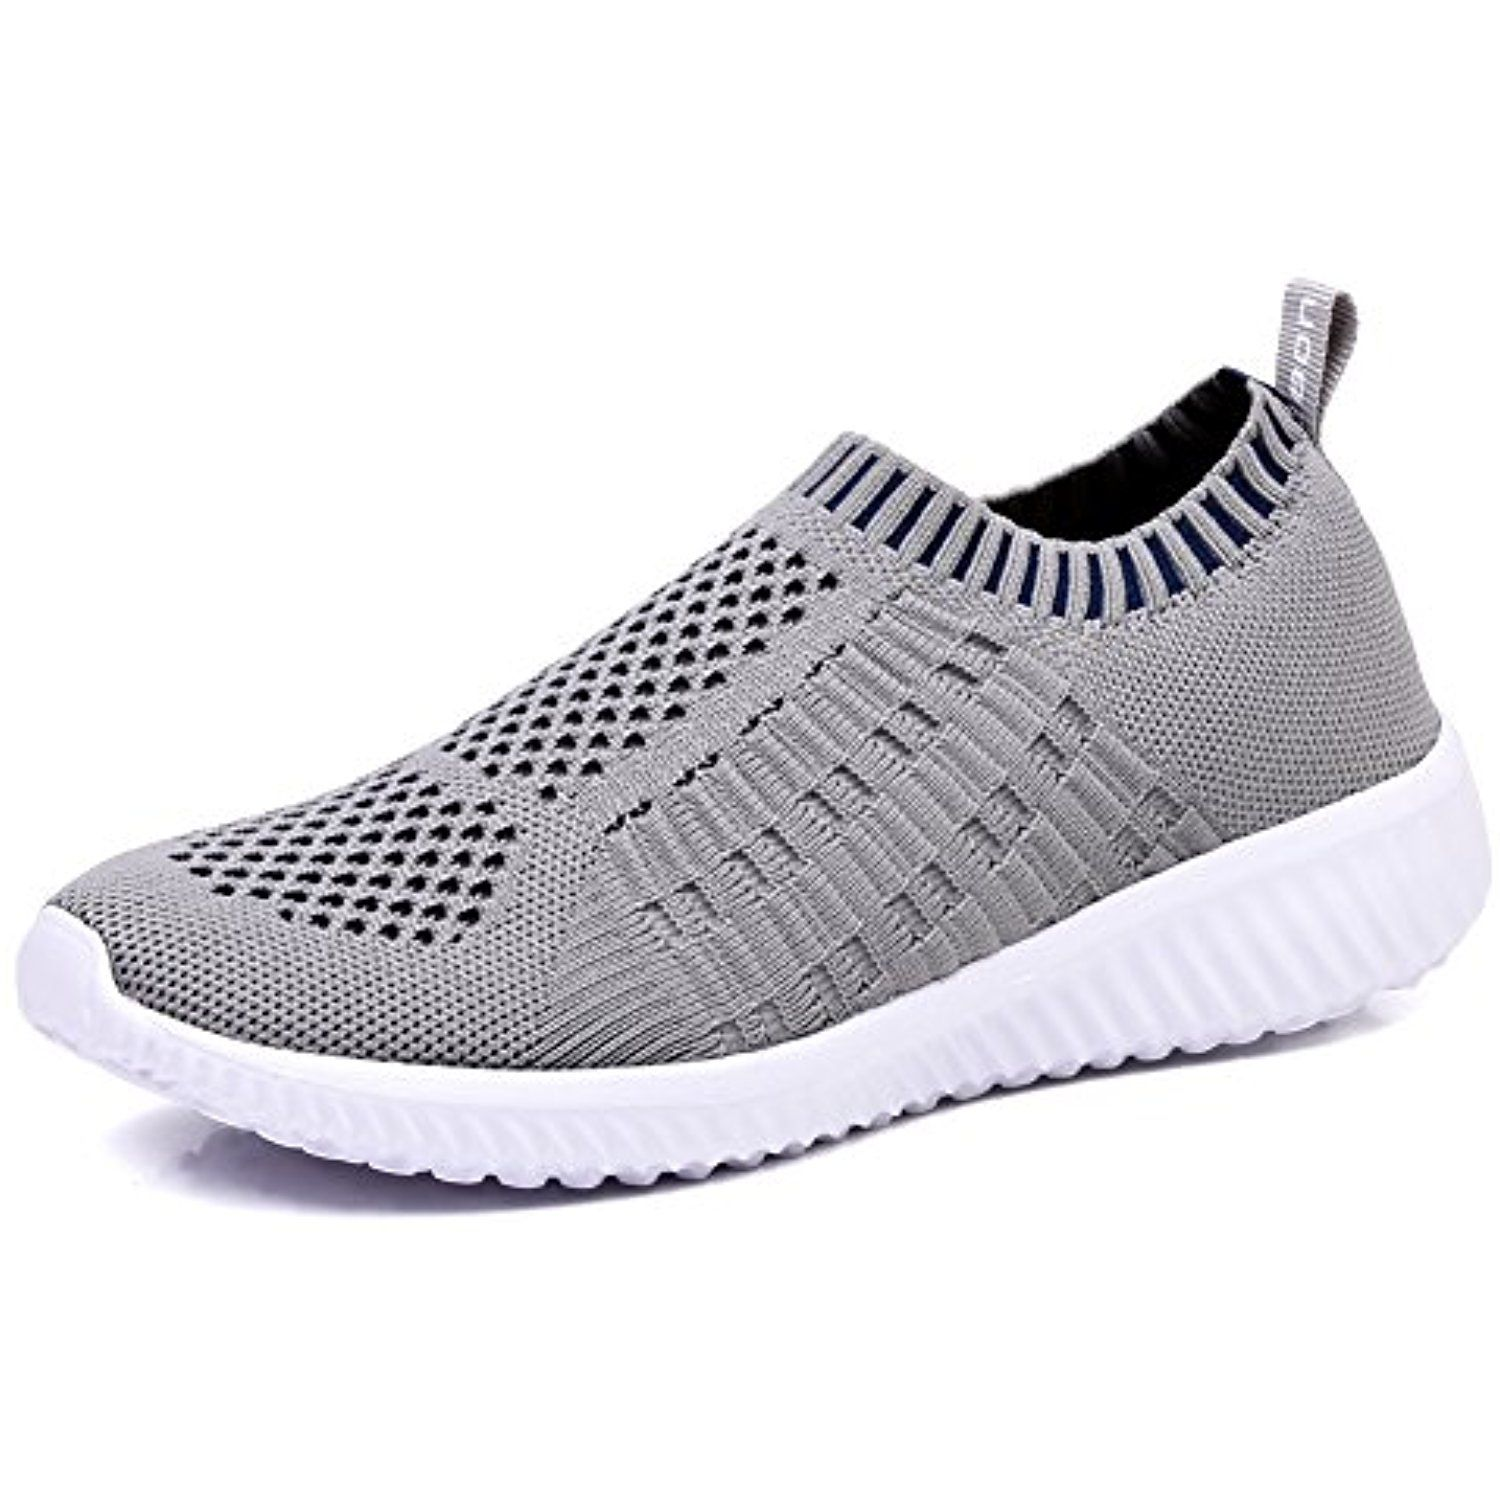 Shoes Outlet - Womens Net cloth casual breathable mesh sports running cloth shoes knitting